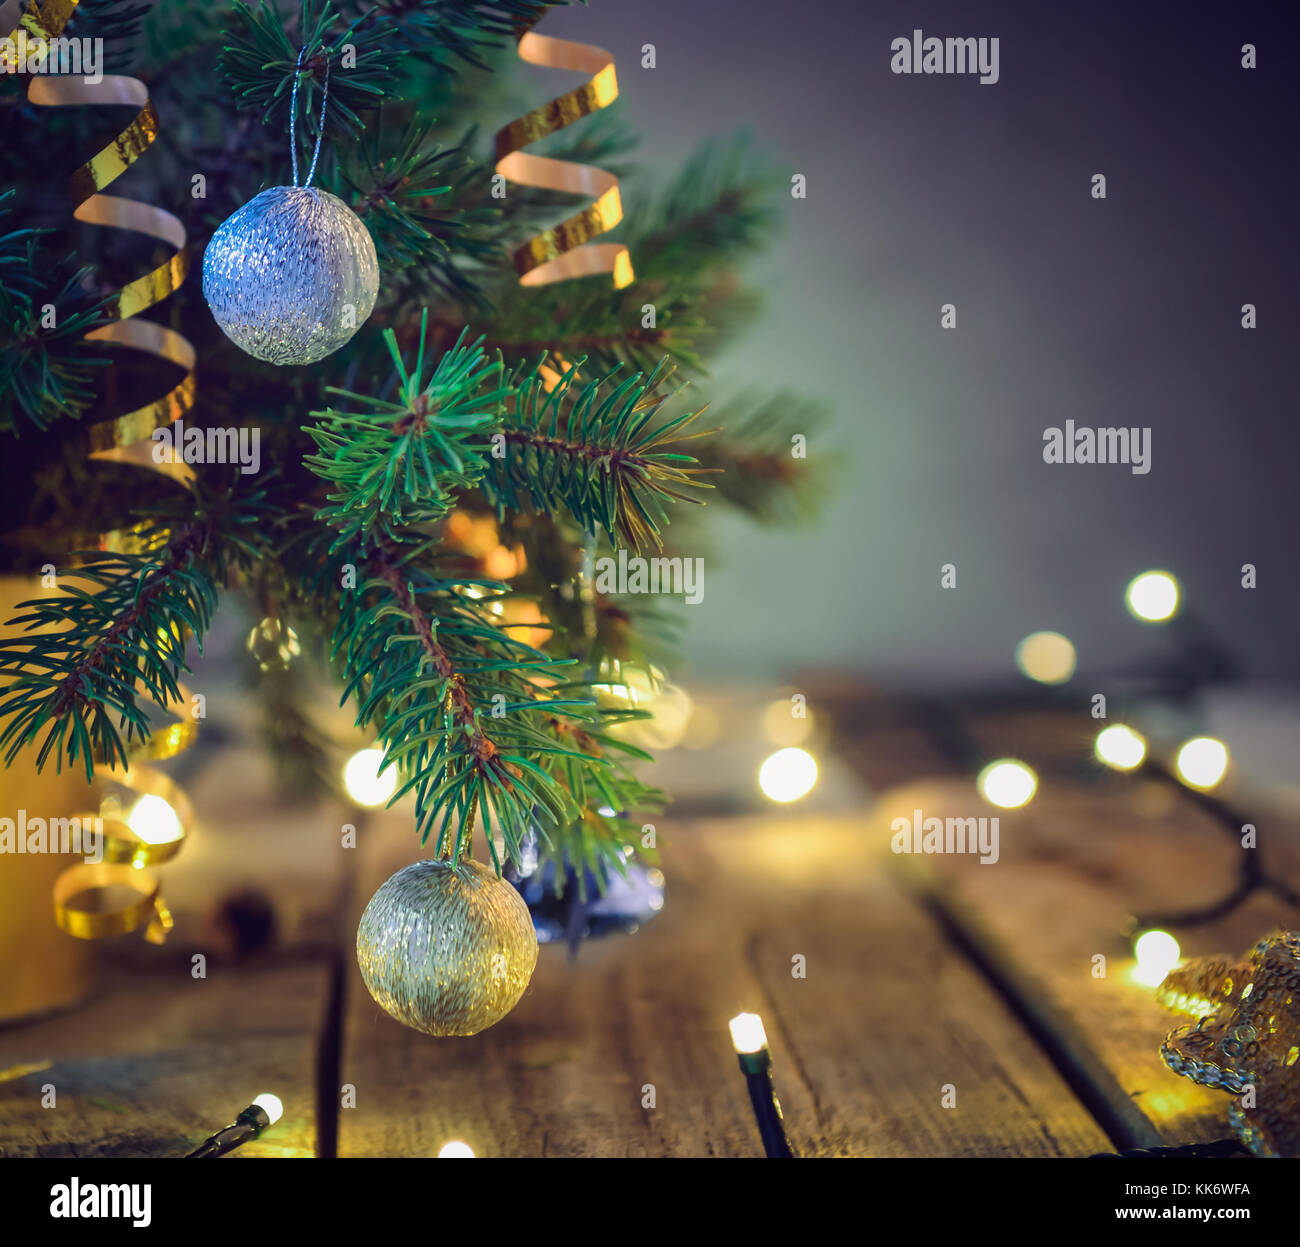 composition of christmas tree in vase with decorations and lights on the wooden vintage table retro style christmas background soft selective focus - Christmas Vase Decorations